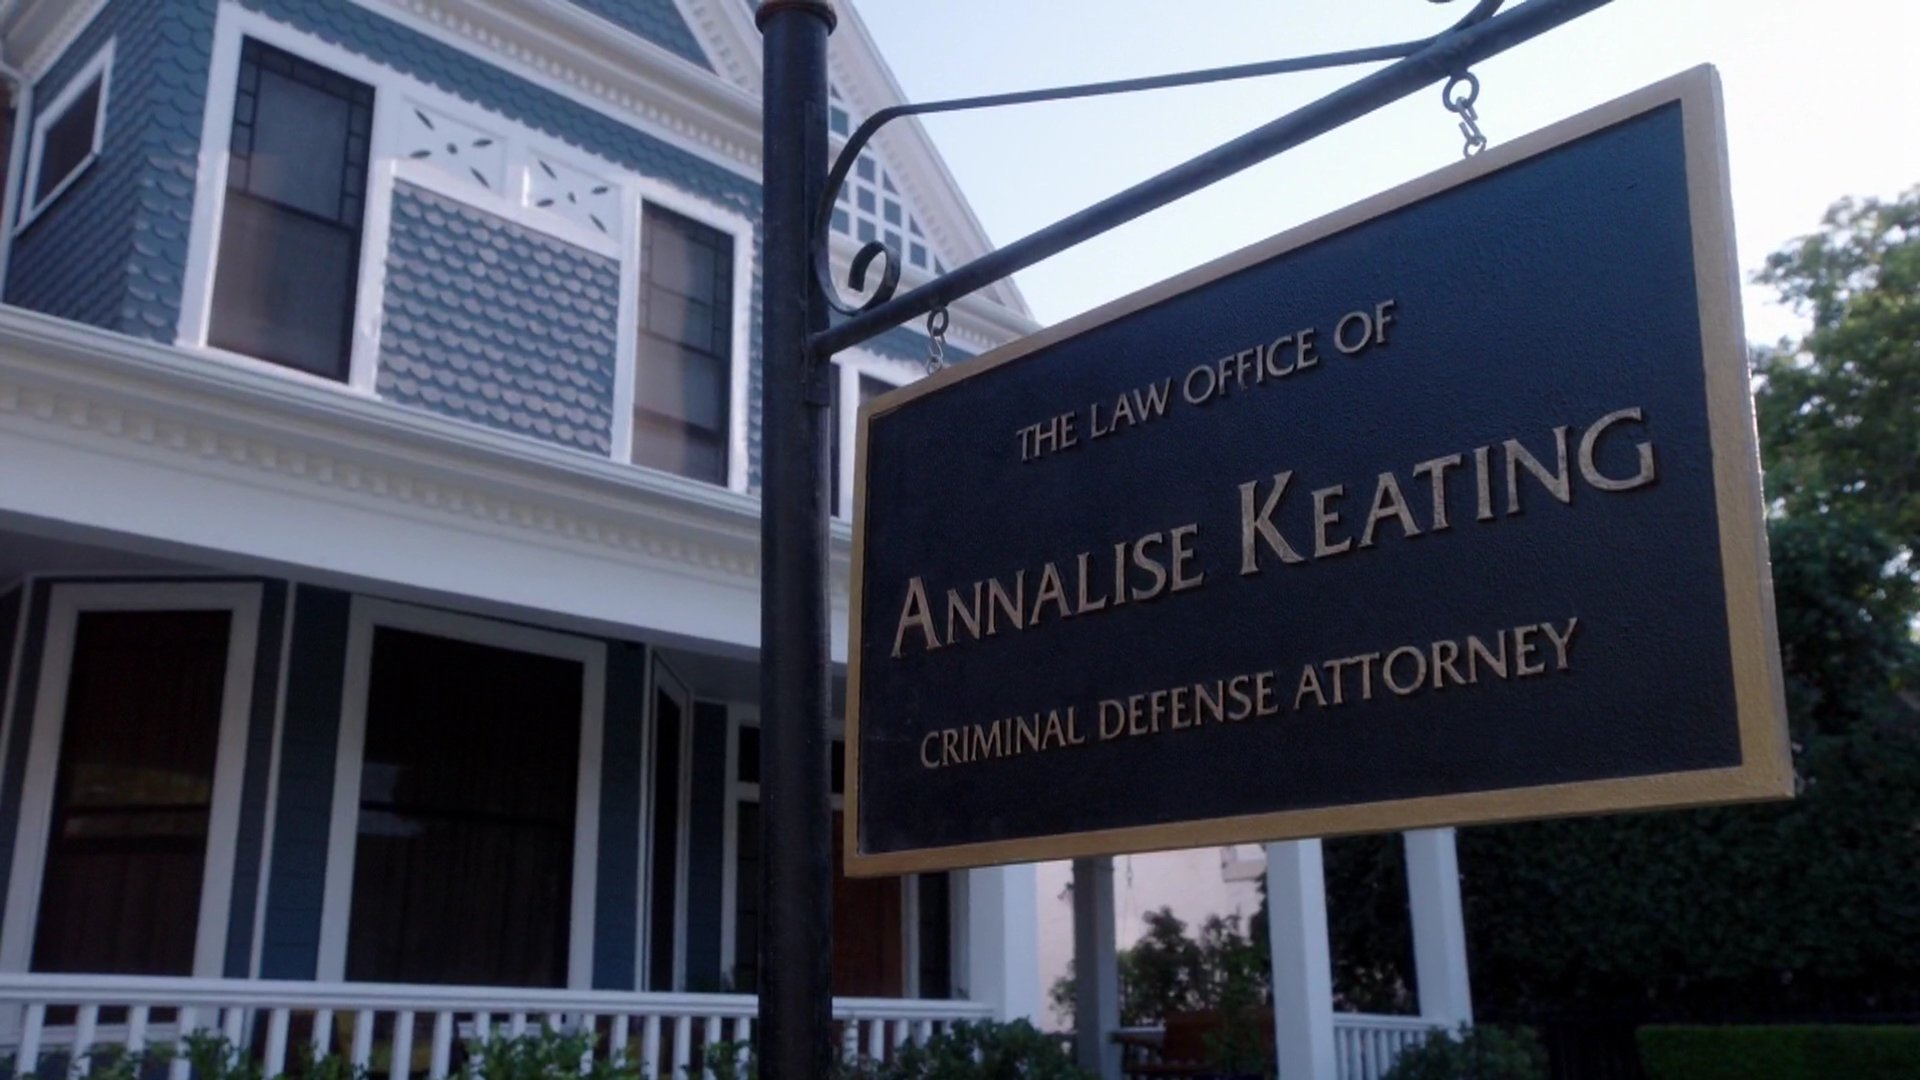 Annalise Keating's Law Office